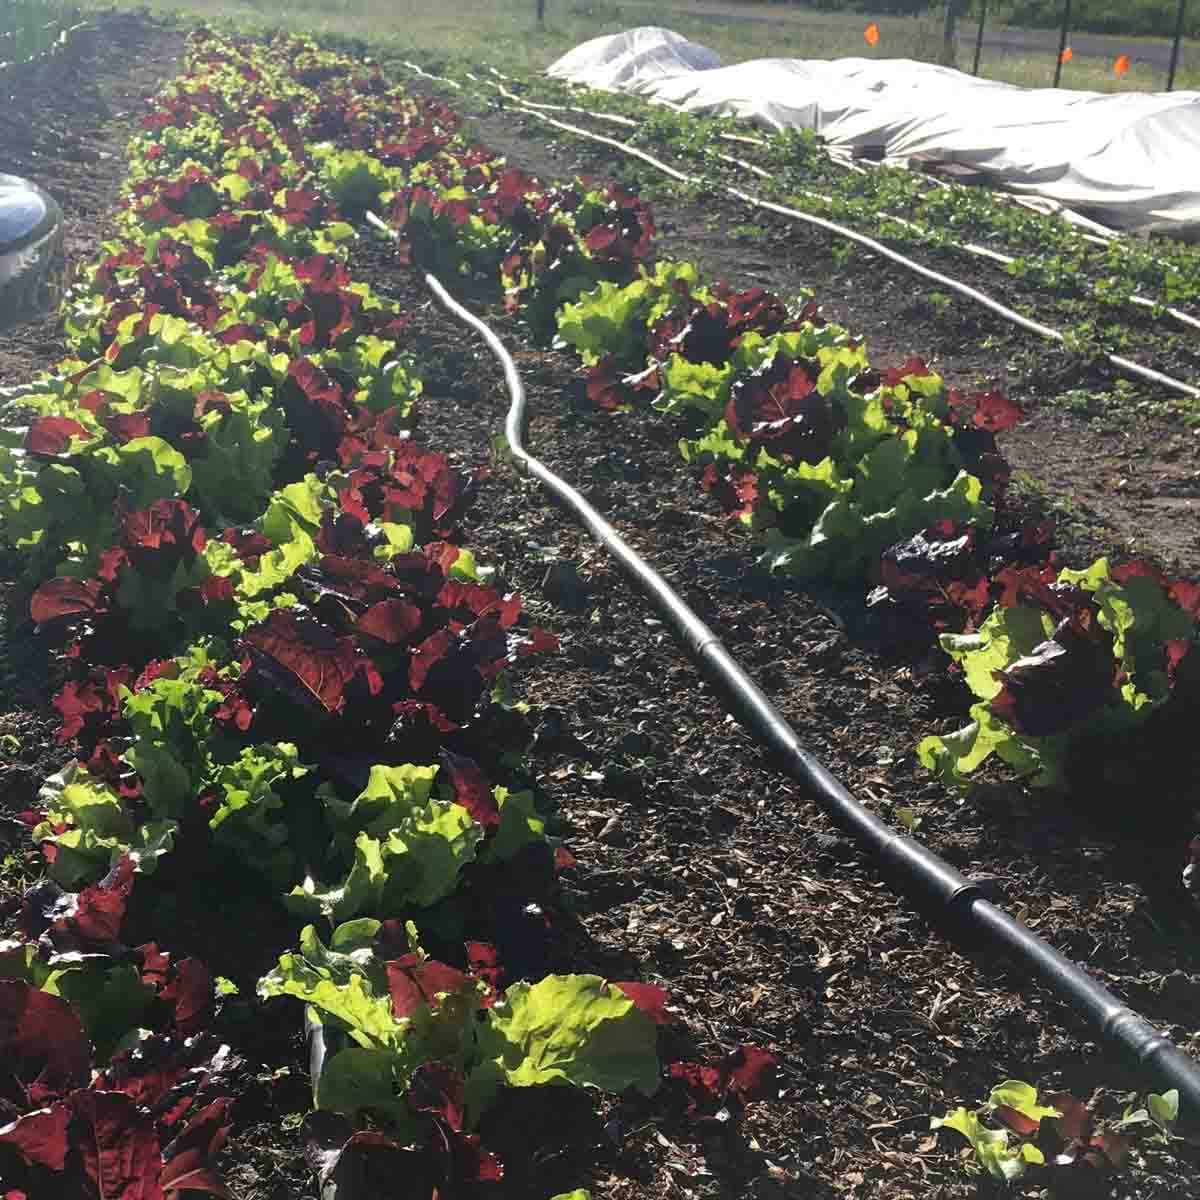 Salad mix at the Soil Stewards Farm